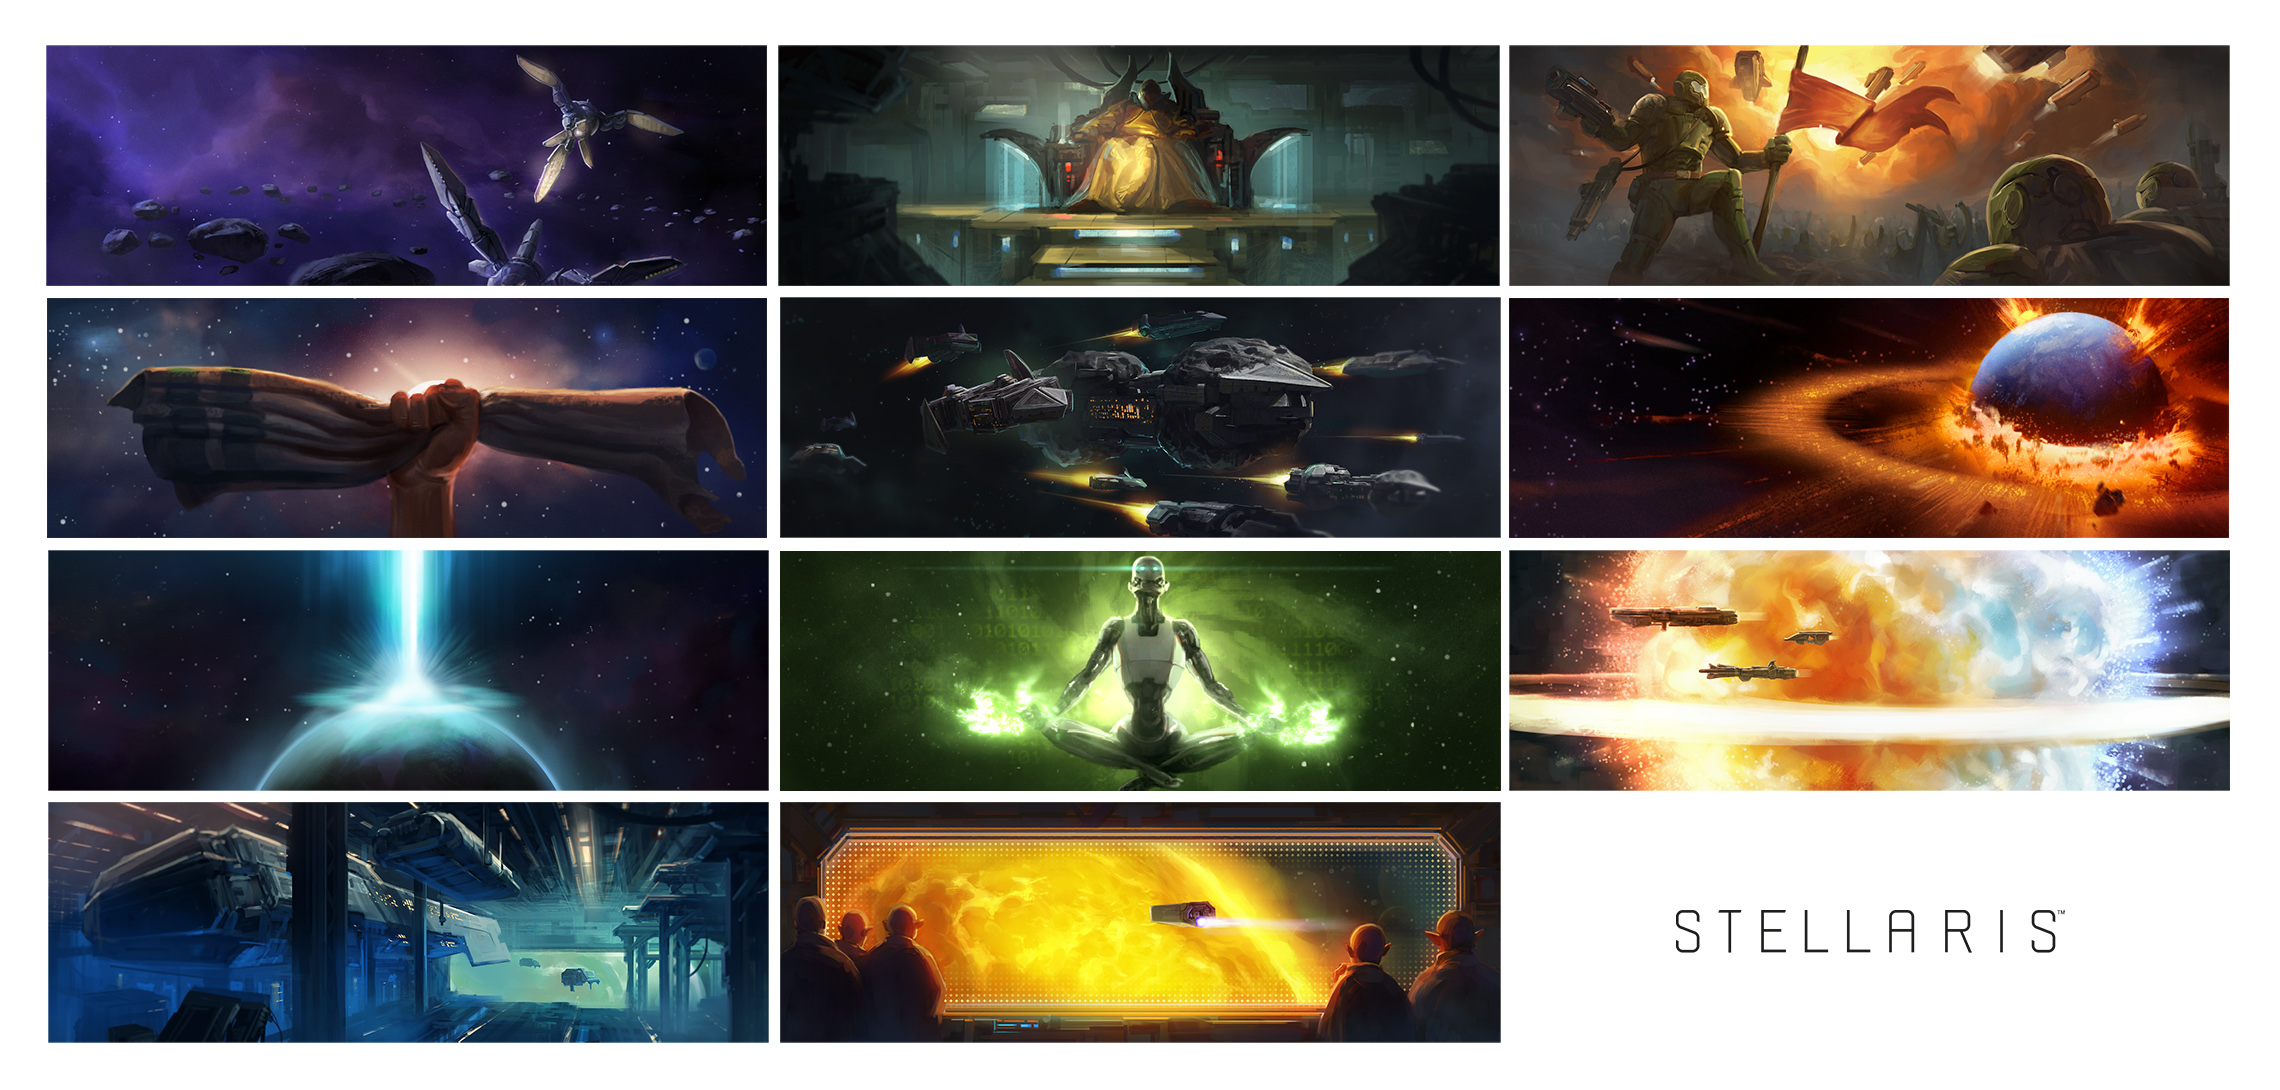 Stellaris event images